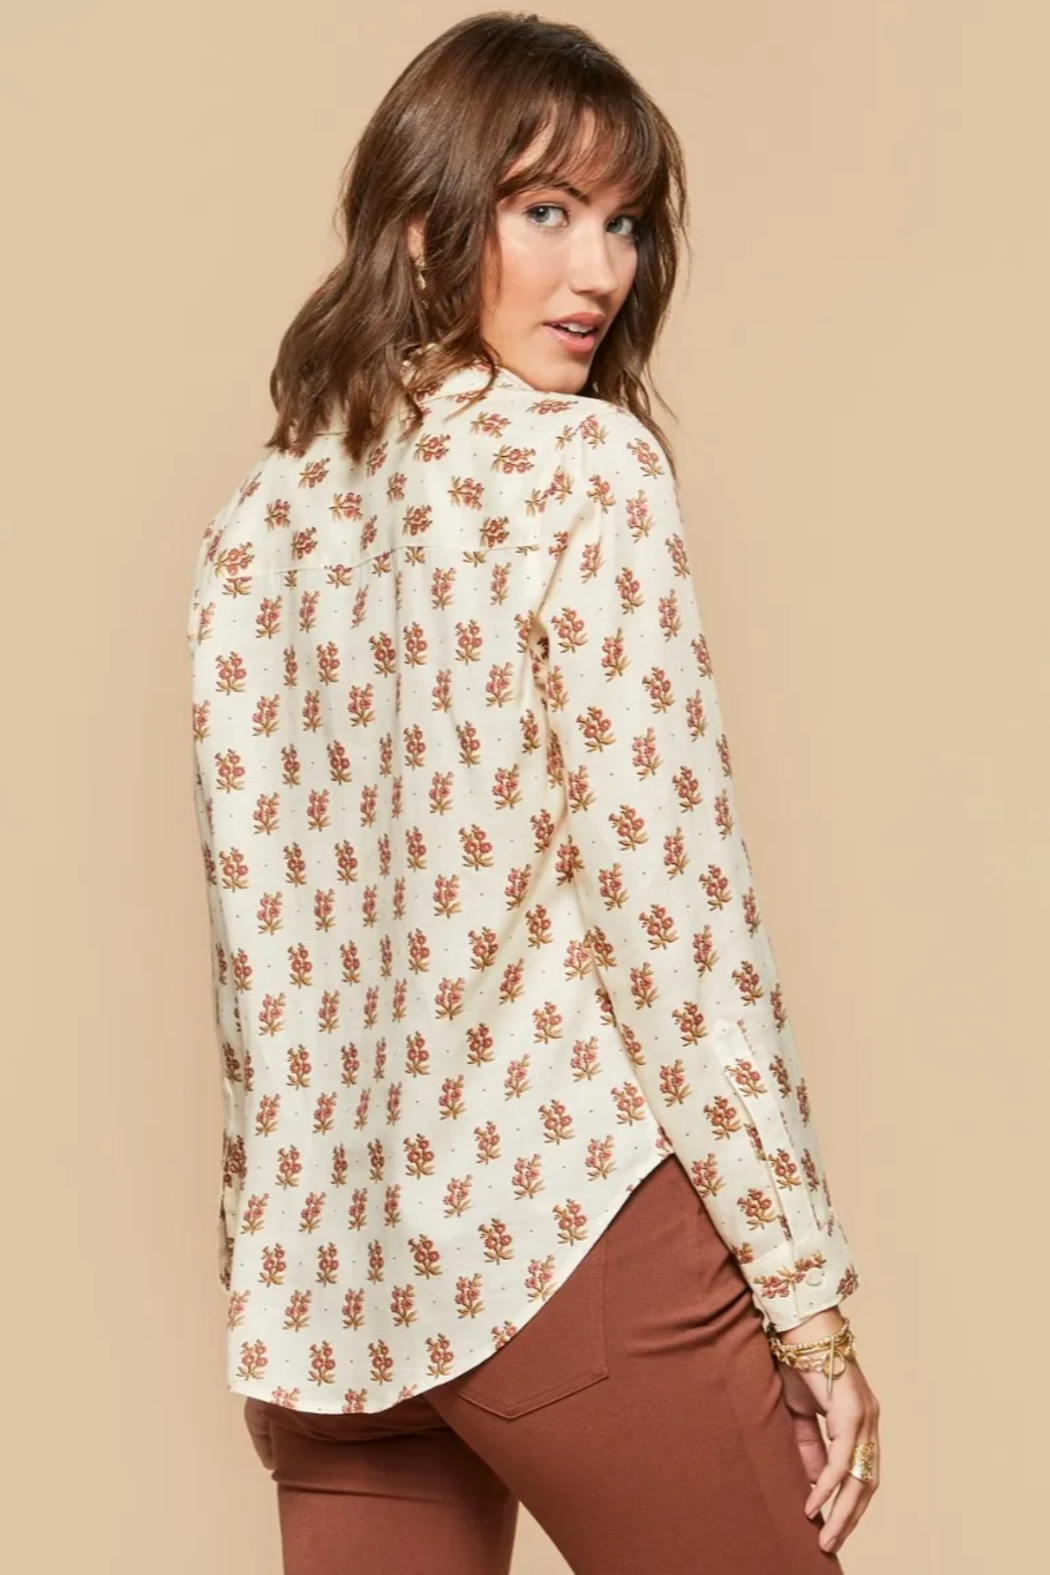 Spartina 449 Lois Shirt-Pink House Floral - Front Full Image